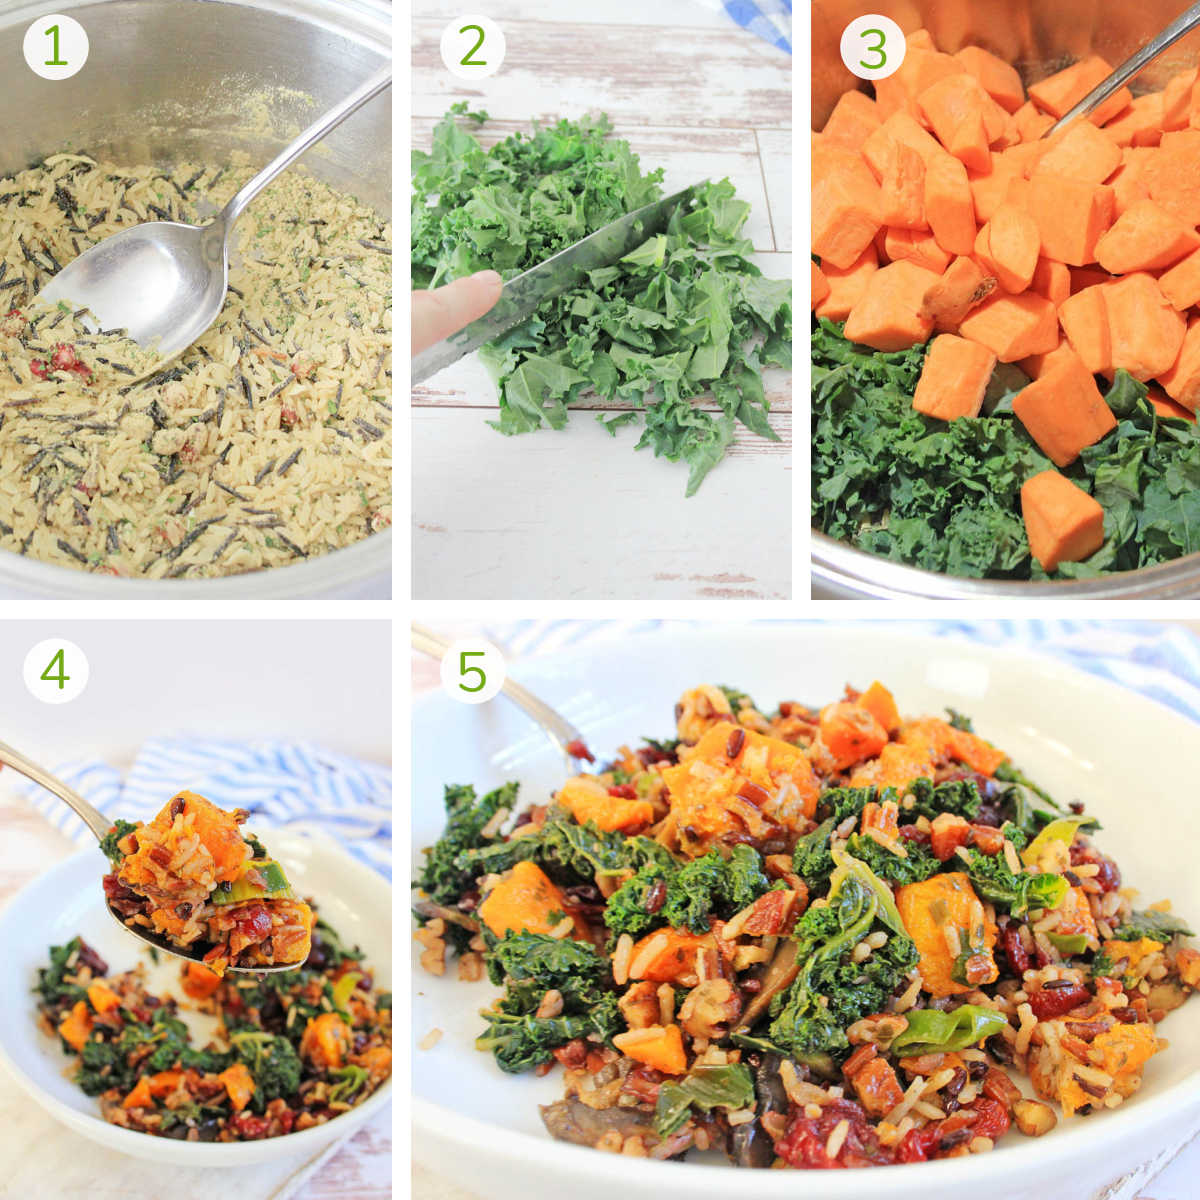 process photos showing making the rice, chopping the kale, adding the veggies and serving.